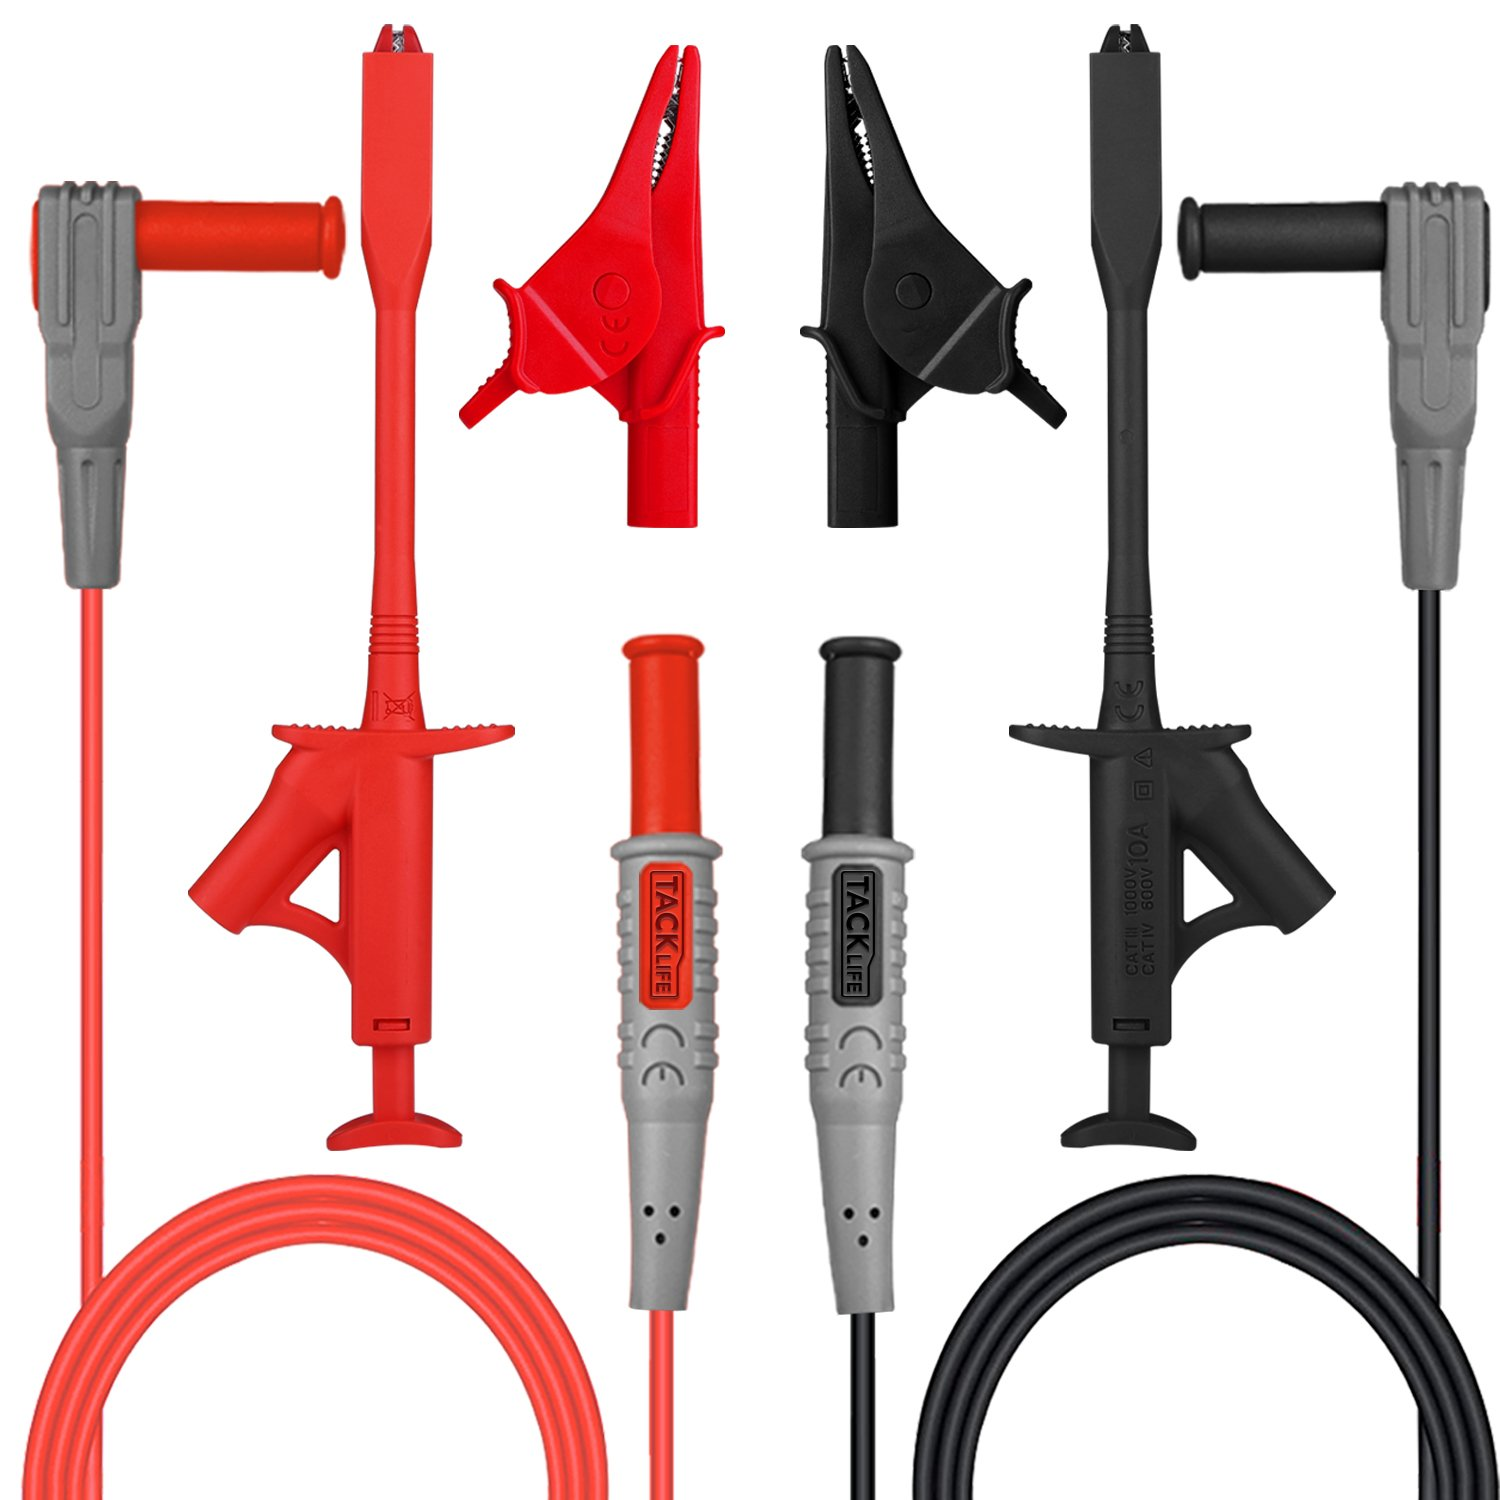 TACKLIFE Electronic Test Leads Kit, Digital Multimeter Leads with Test Extension, Alligator Clips, Retractable Alligator Clips Replaceable Test Meter & Clamp Meter Probes Tips Set of 6 Pieces, METL03